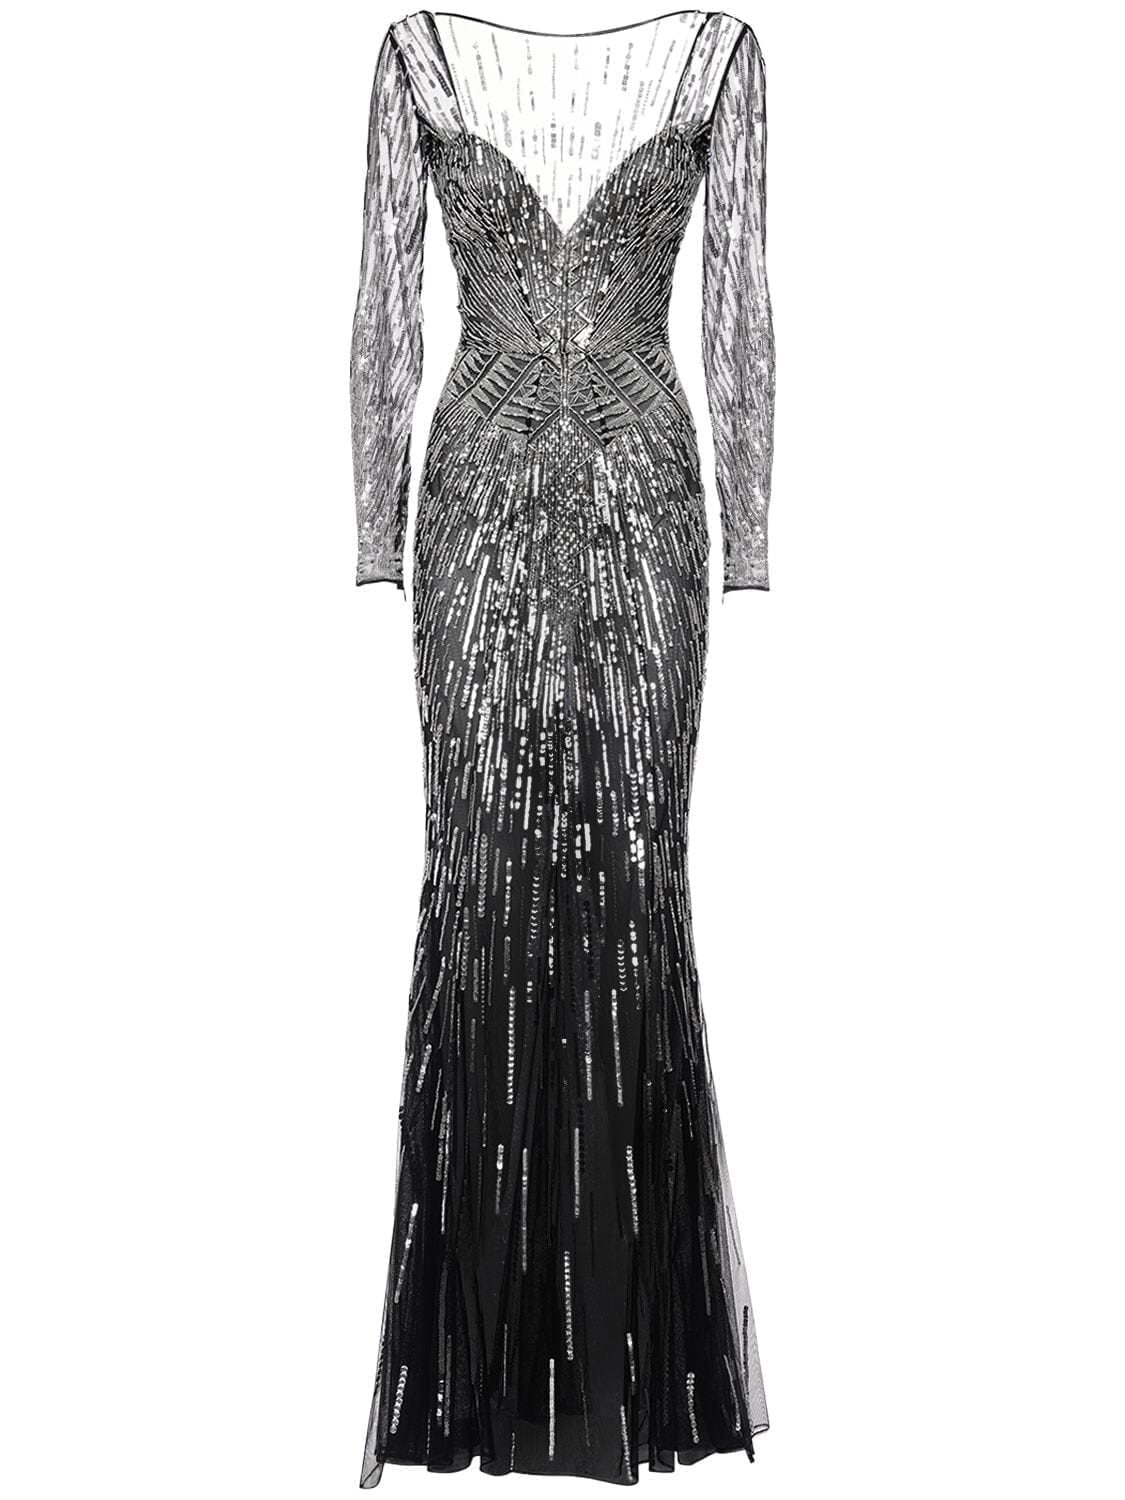 ZUHAIR MURAD Sequined Tulle Long Dress